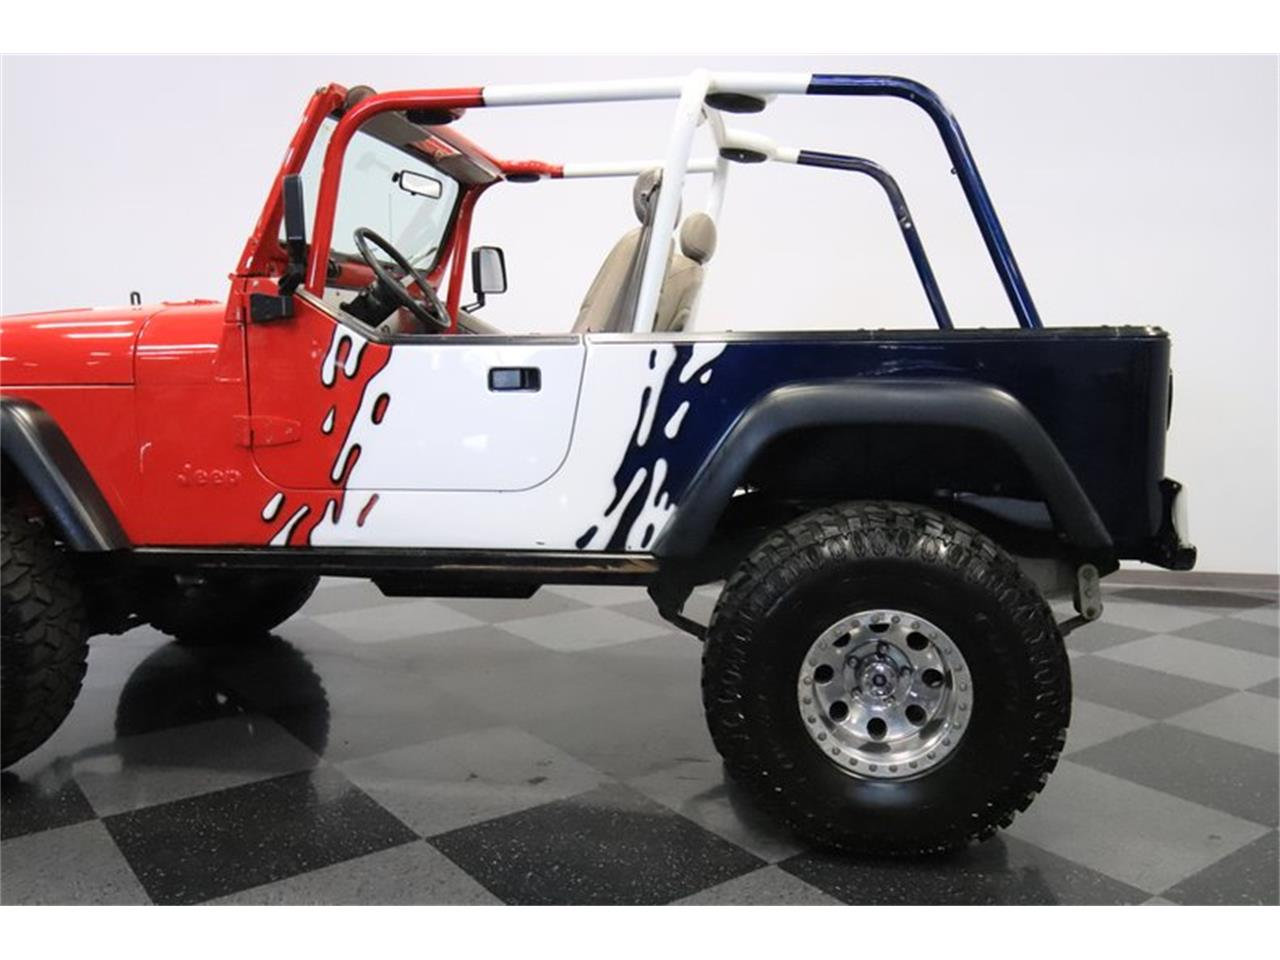 1983 Jeep CJ8 Scrambler for sale in Mesa, AZ – photo 28